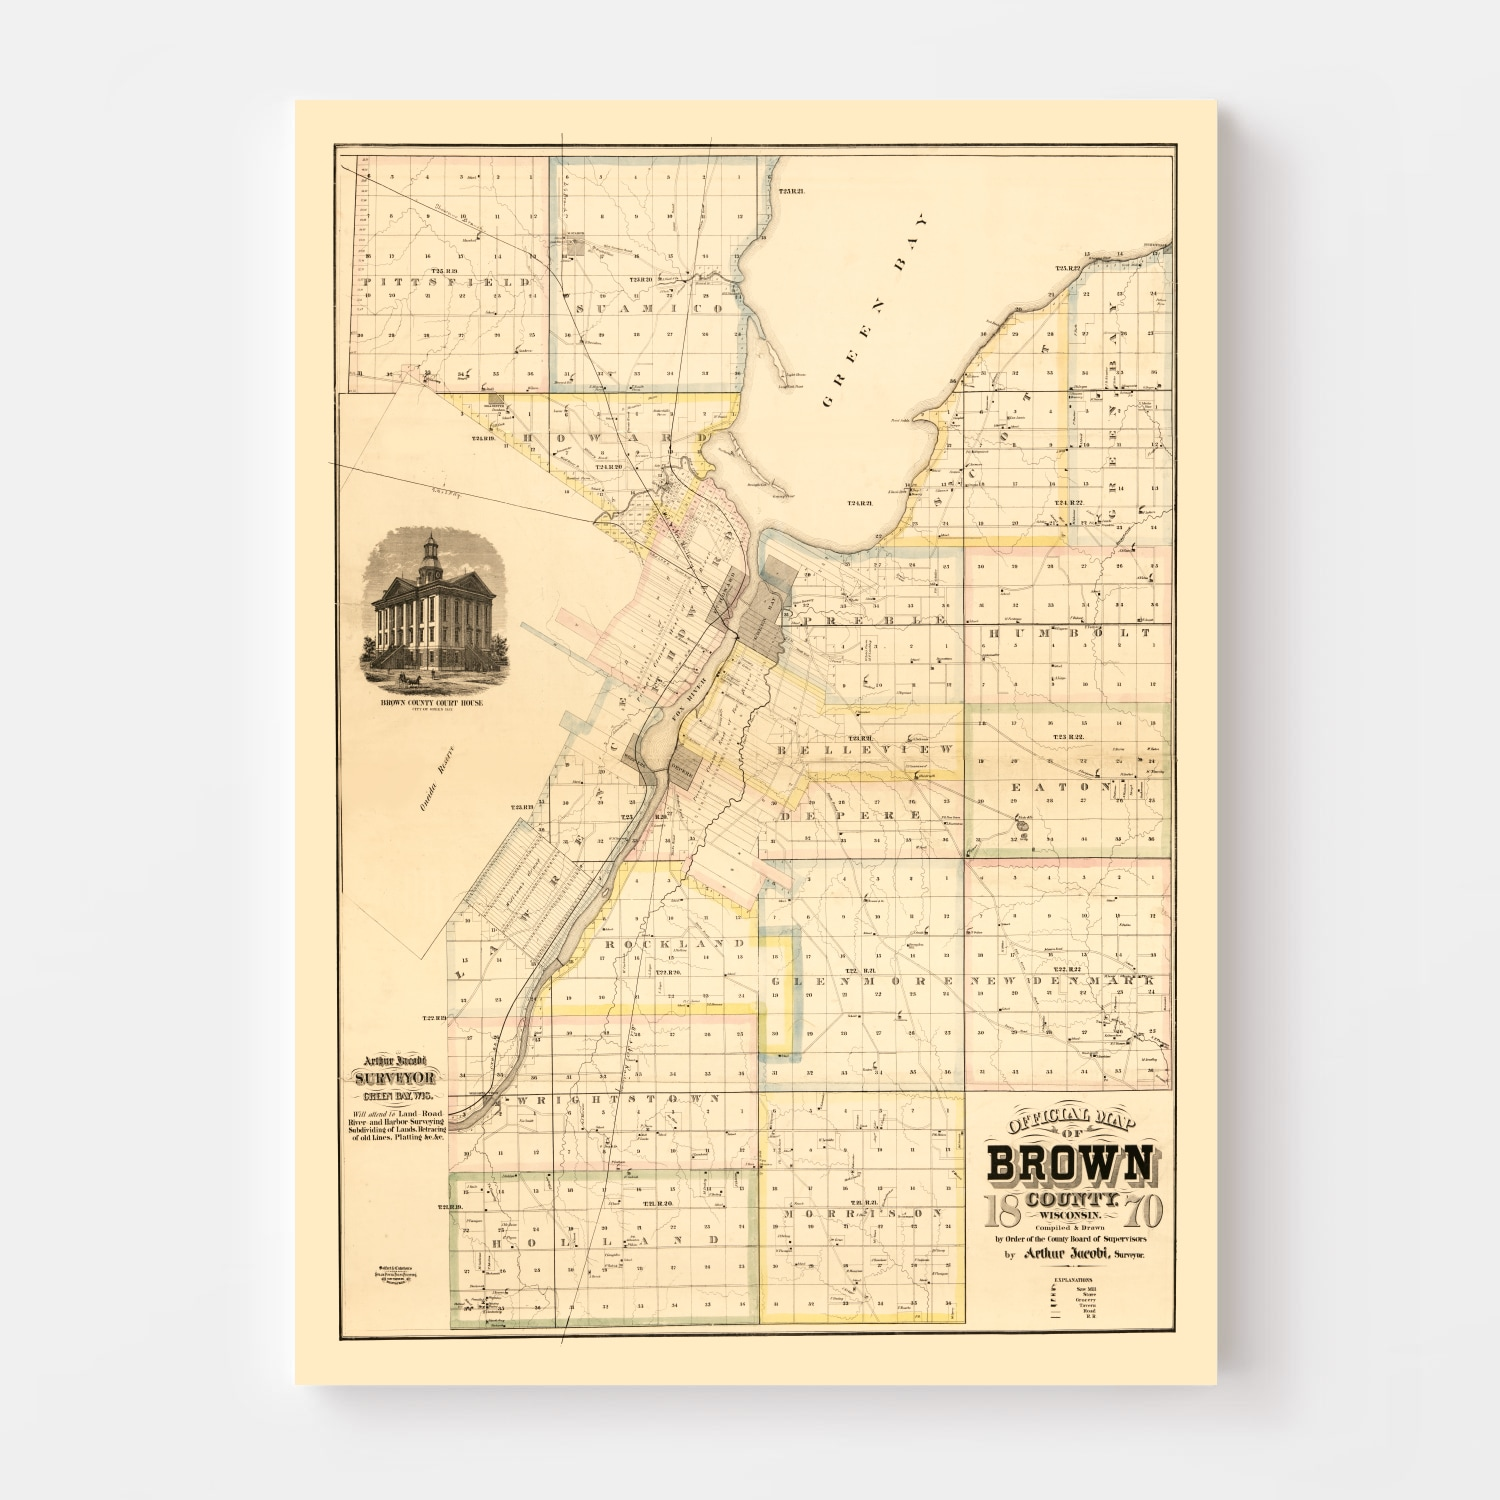 Vintage Map of Brown County, Wisconsin 1870